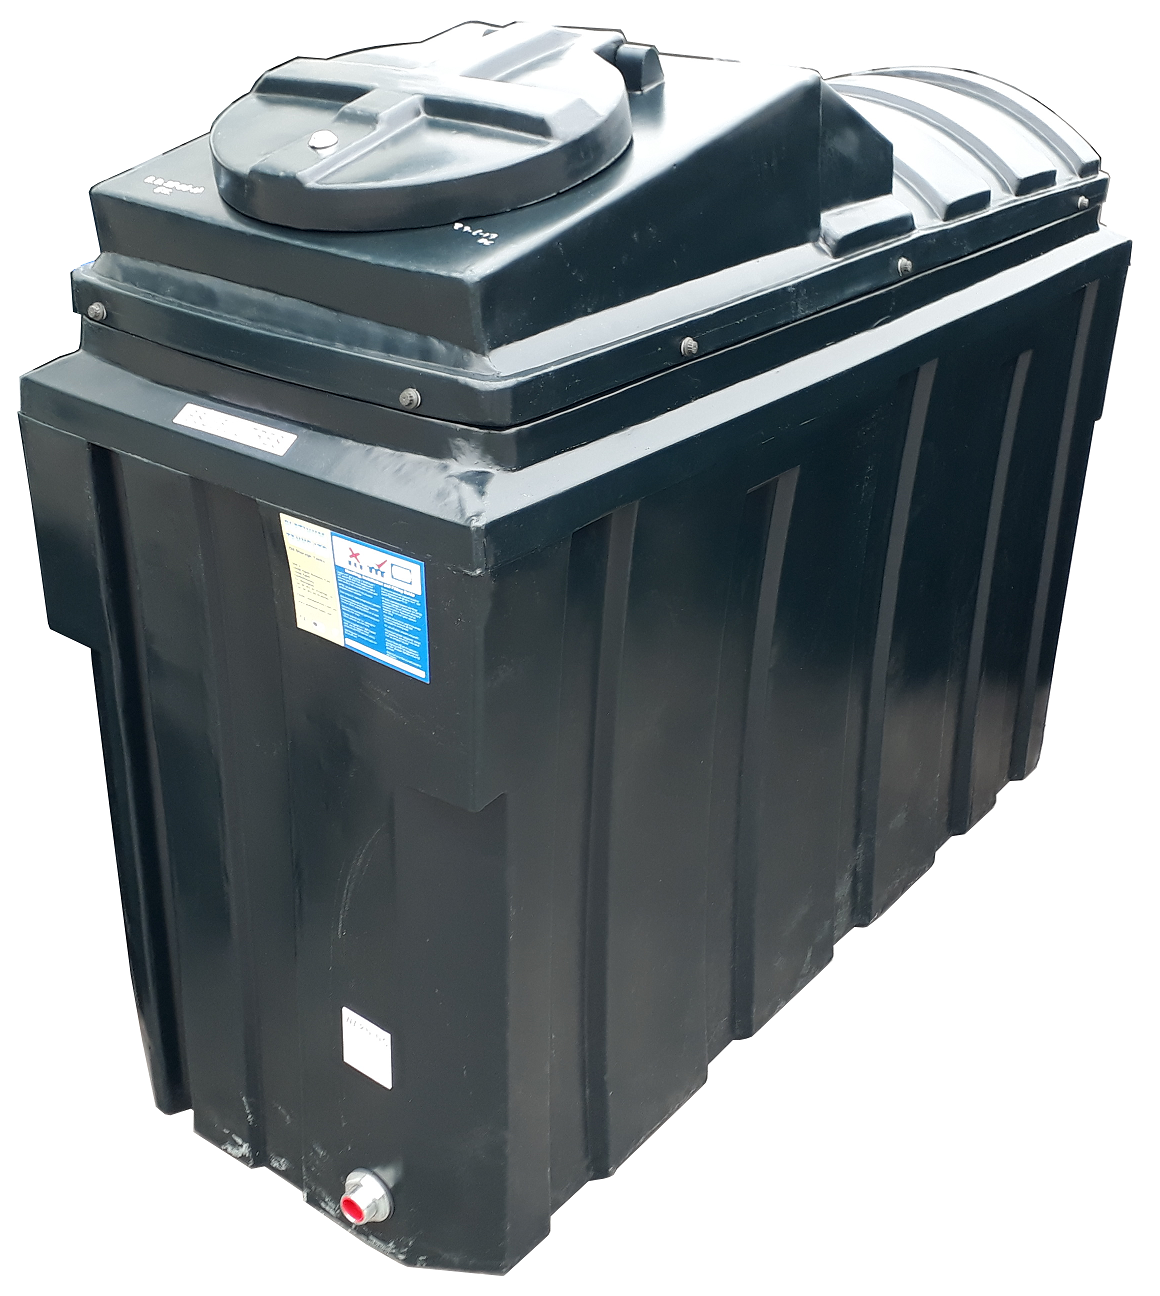 Bunded 650 Litre Rectangular Oil Tank Image